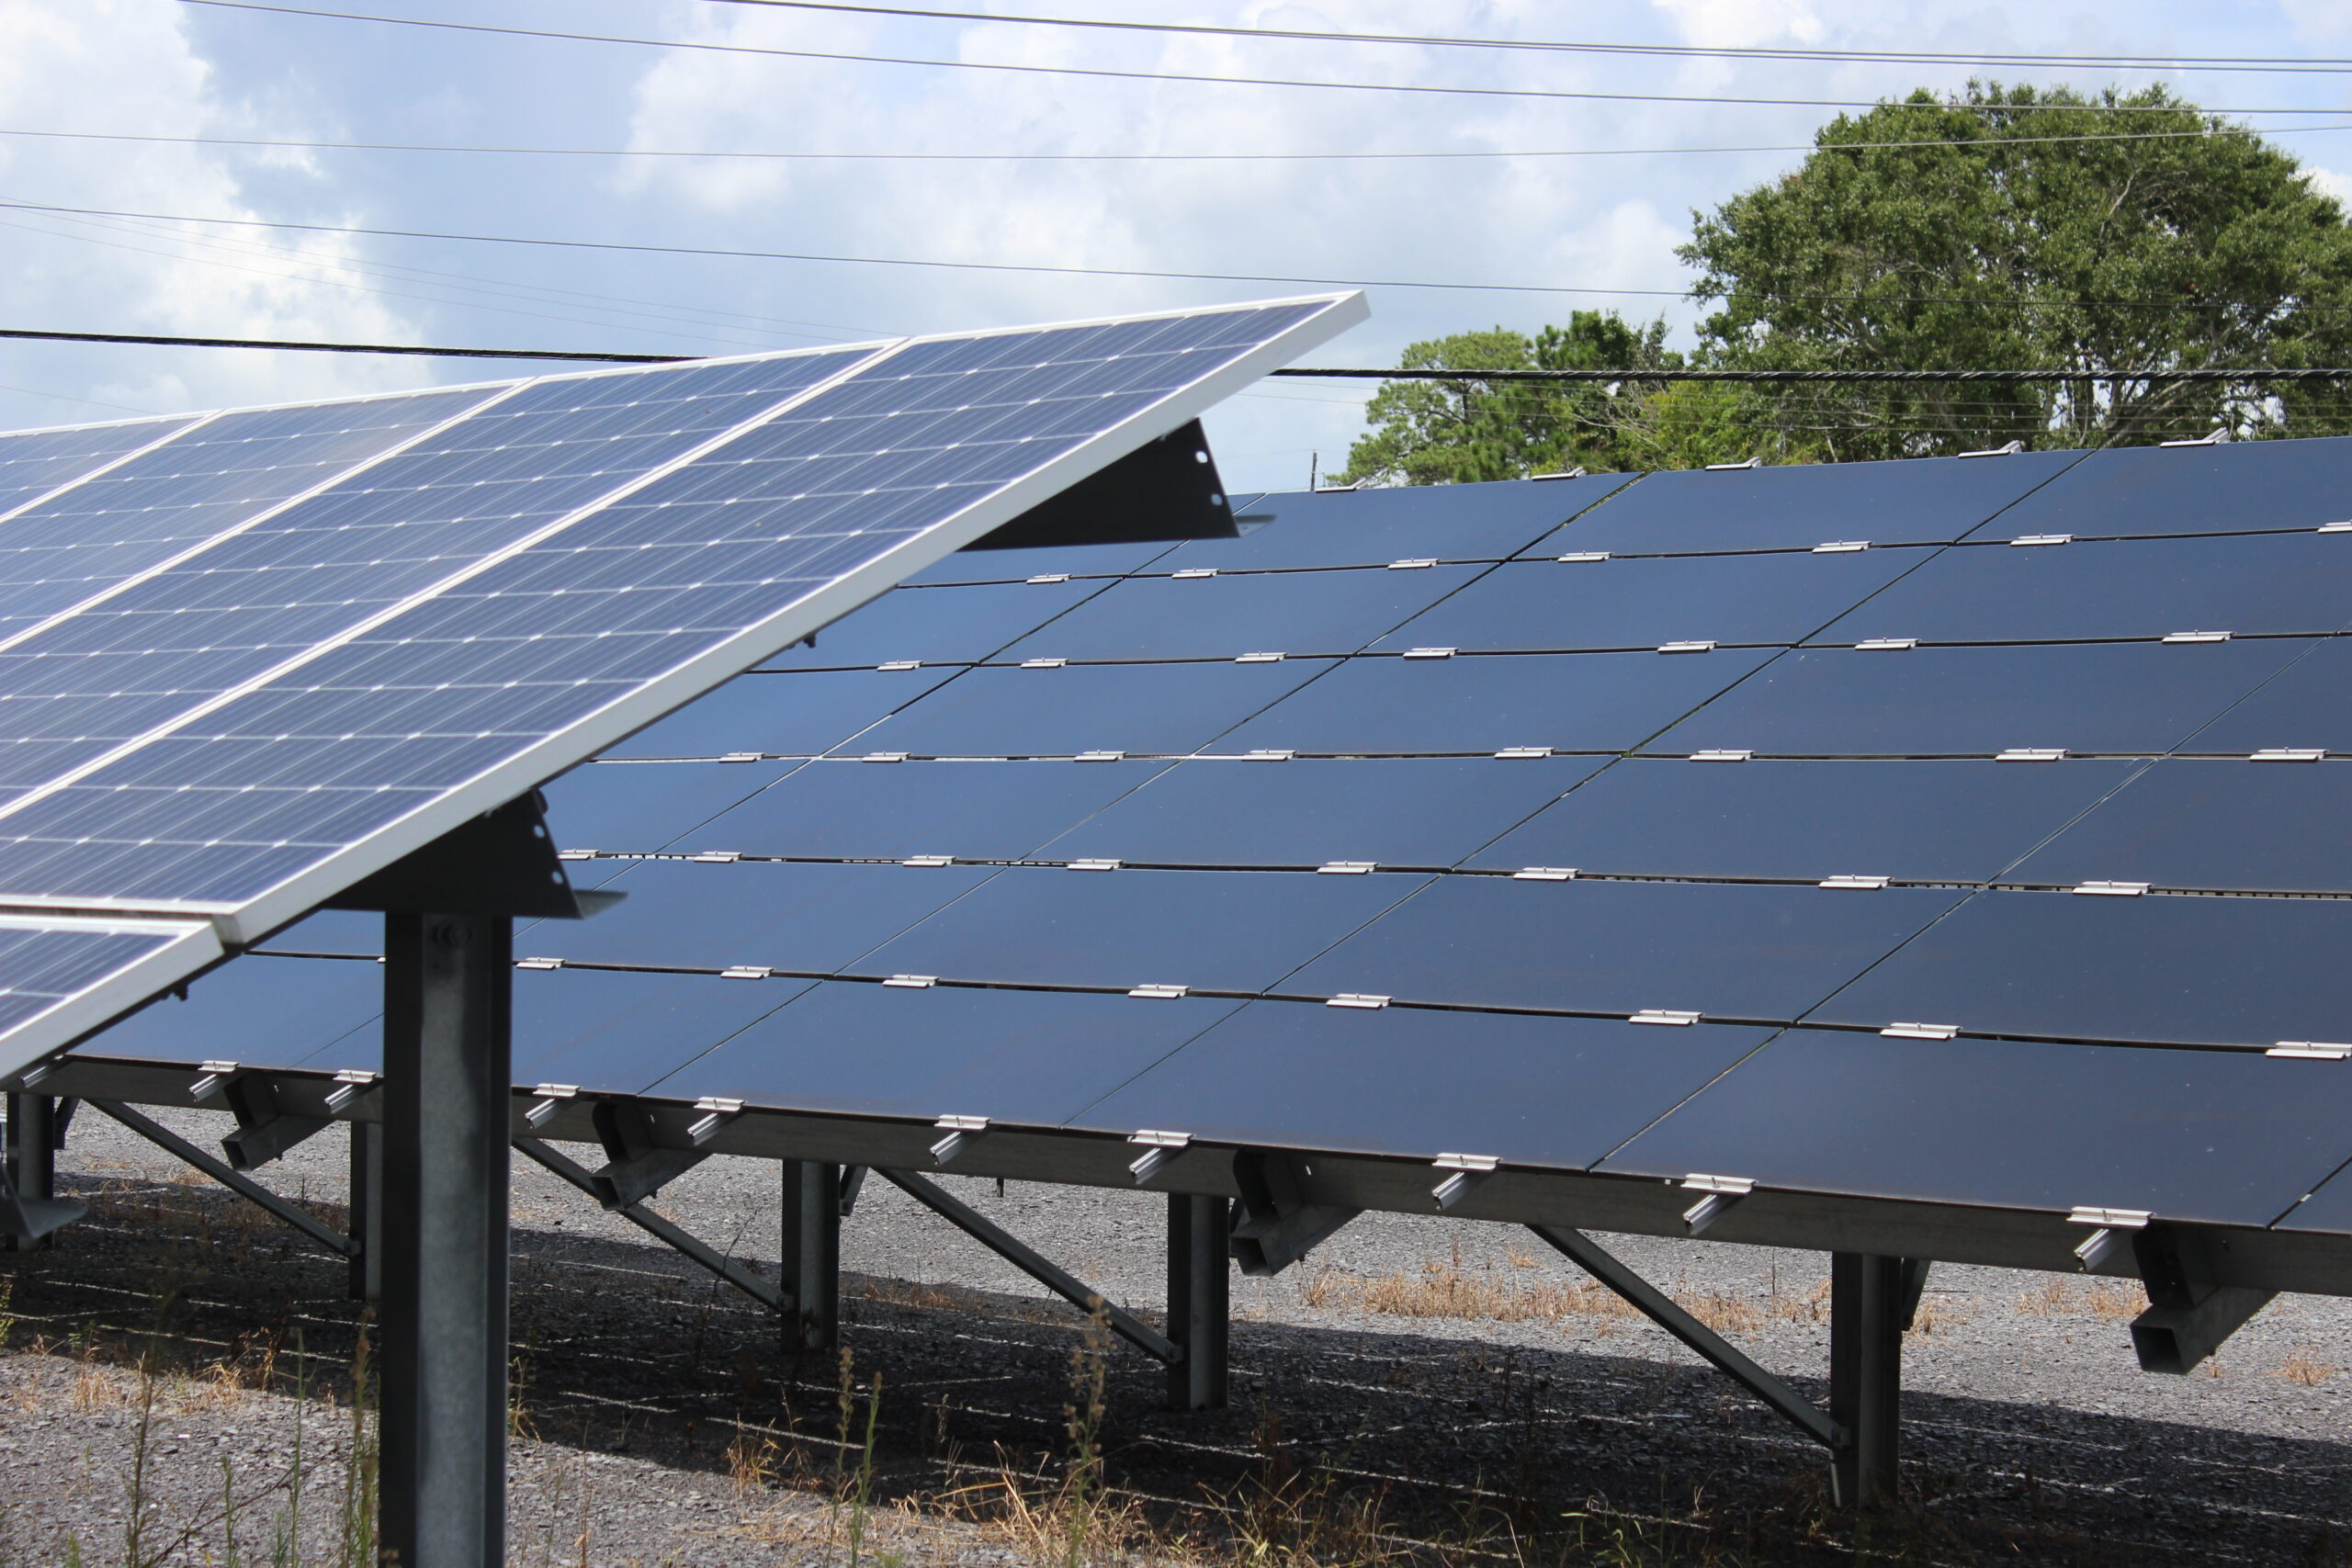 Solar power offers $6 billion opportunity for Louisiana, researchers say